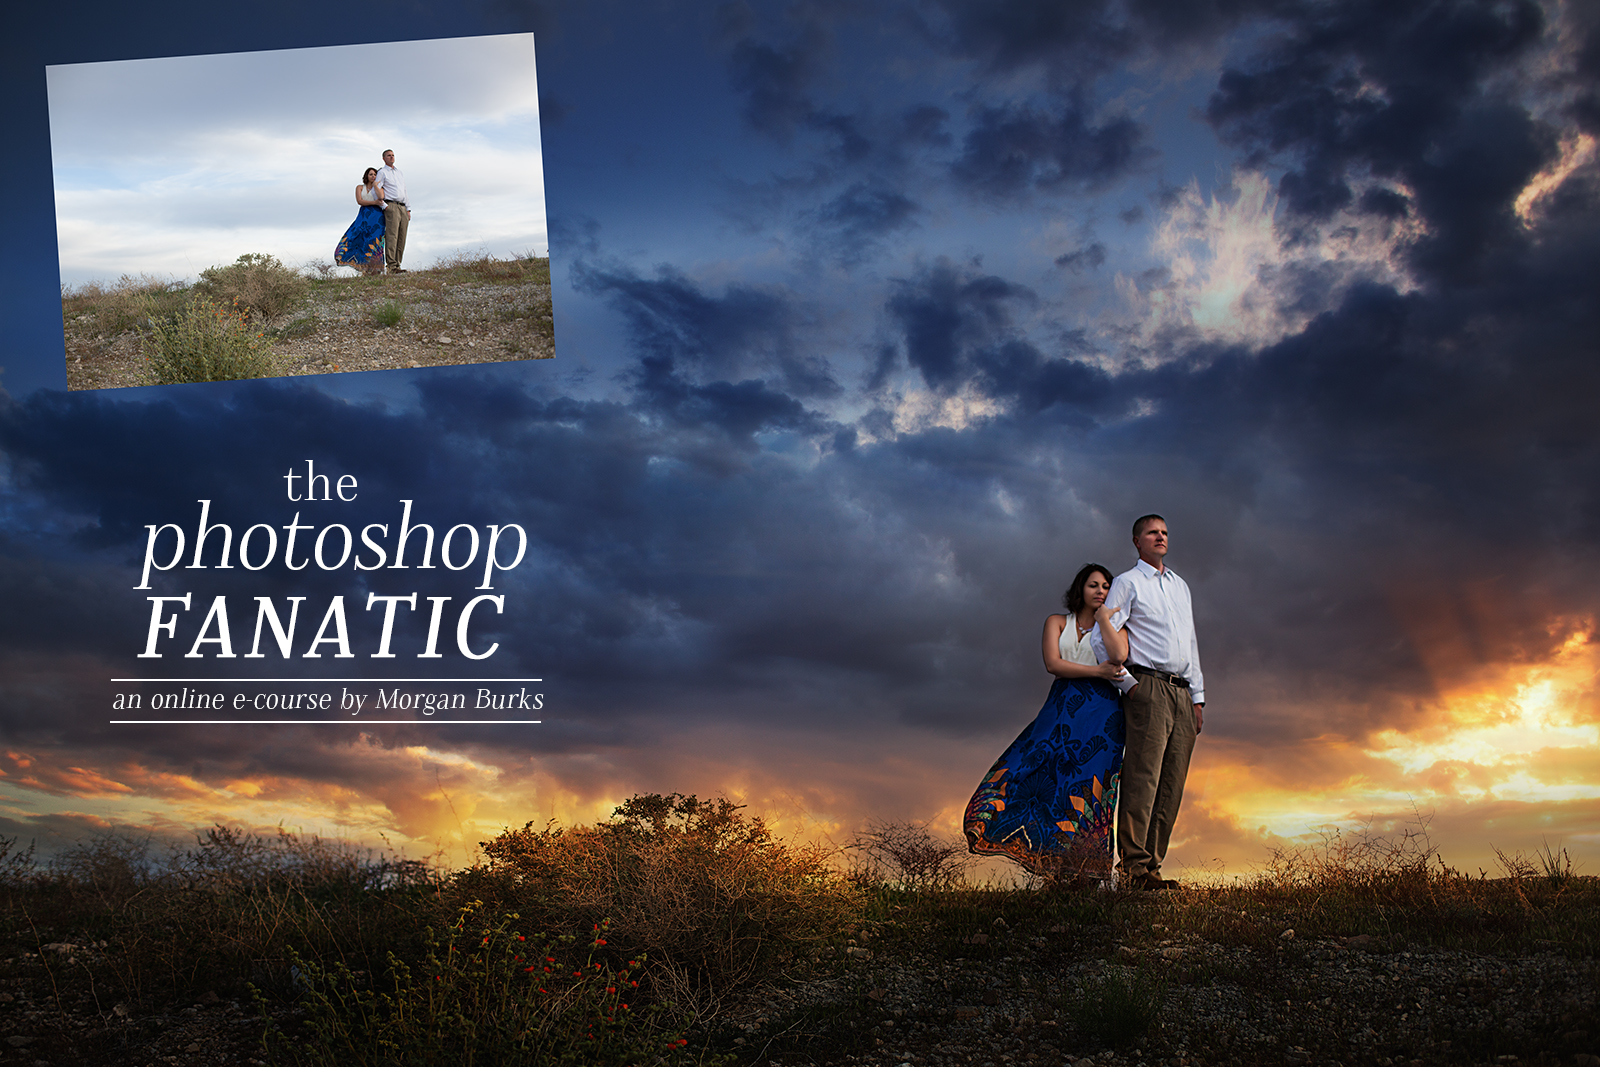 Learn Photoshop online with The Photoshop Fanatic Course by Morgan Burks.